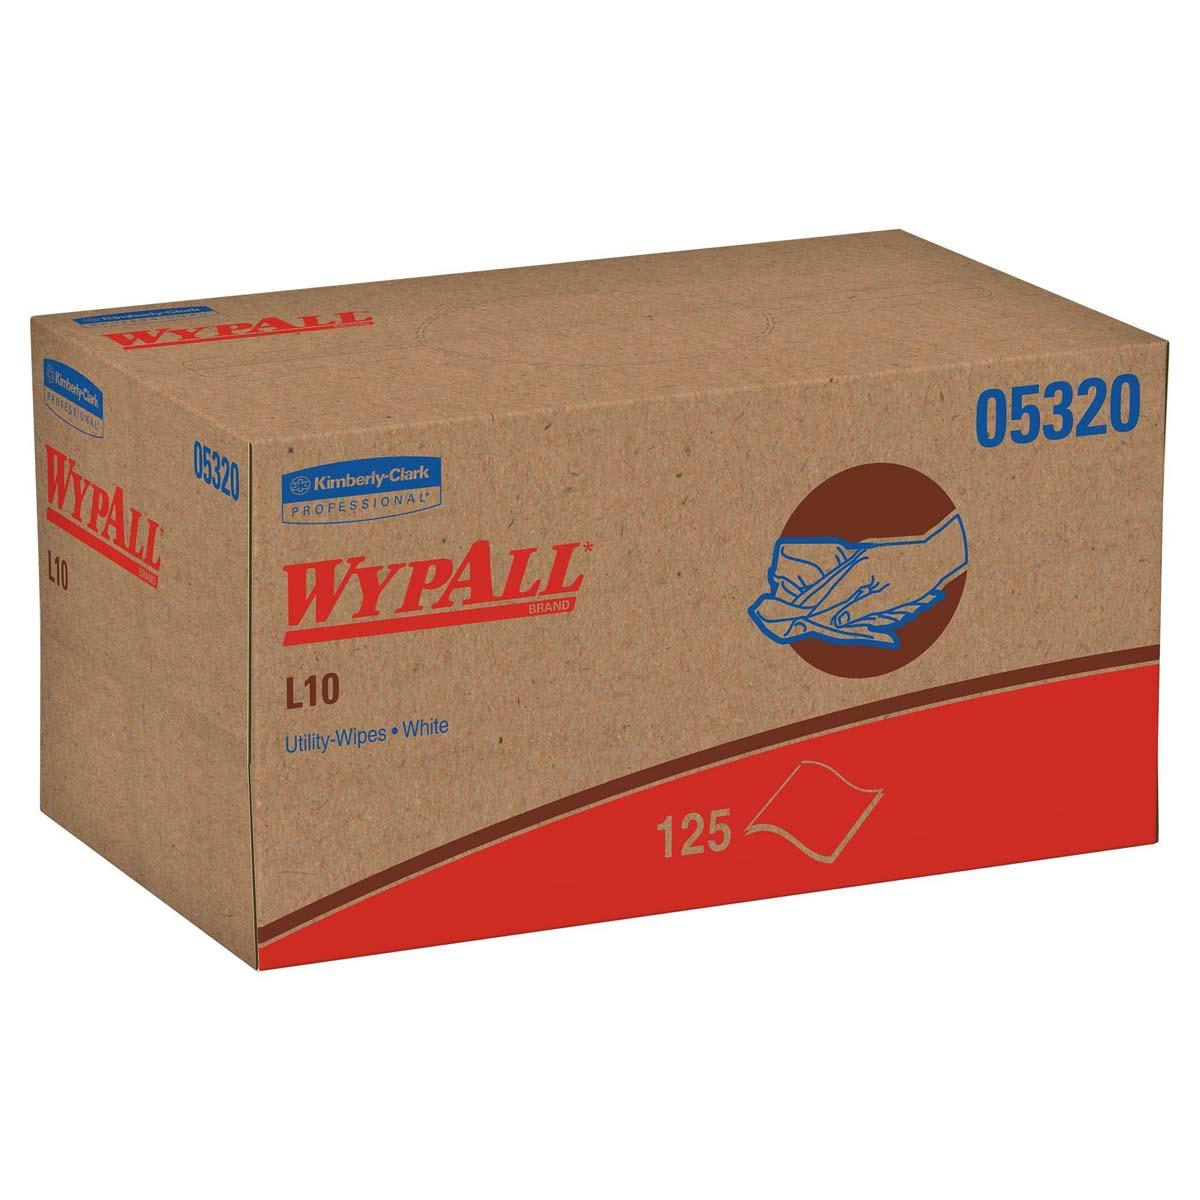 Wypall L10 Disposable Wipers (05320), Limited Use, 1-PLY, Pop-Up Box, White, 18 Boxes / Case, 125 Wipes / Box